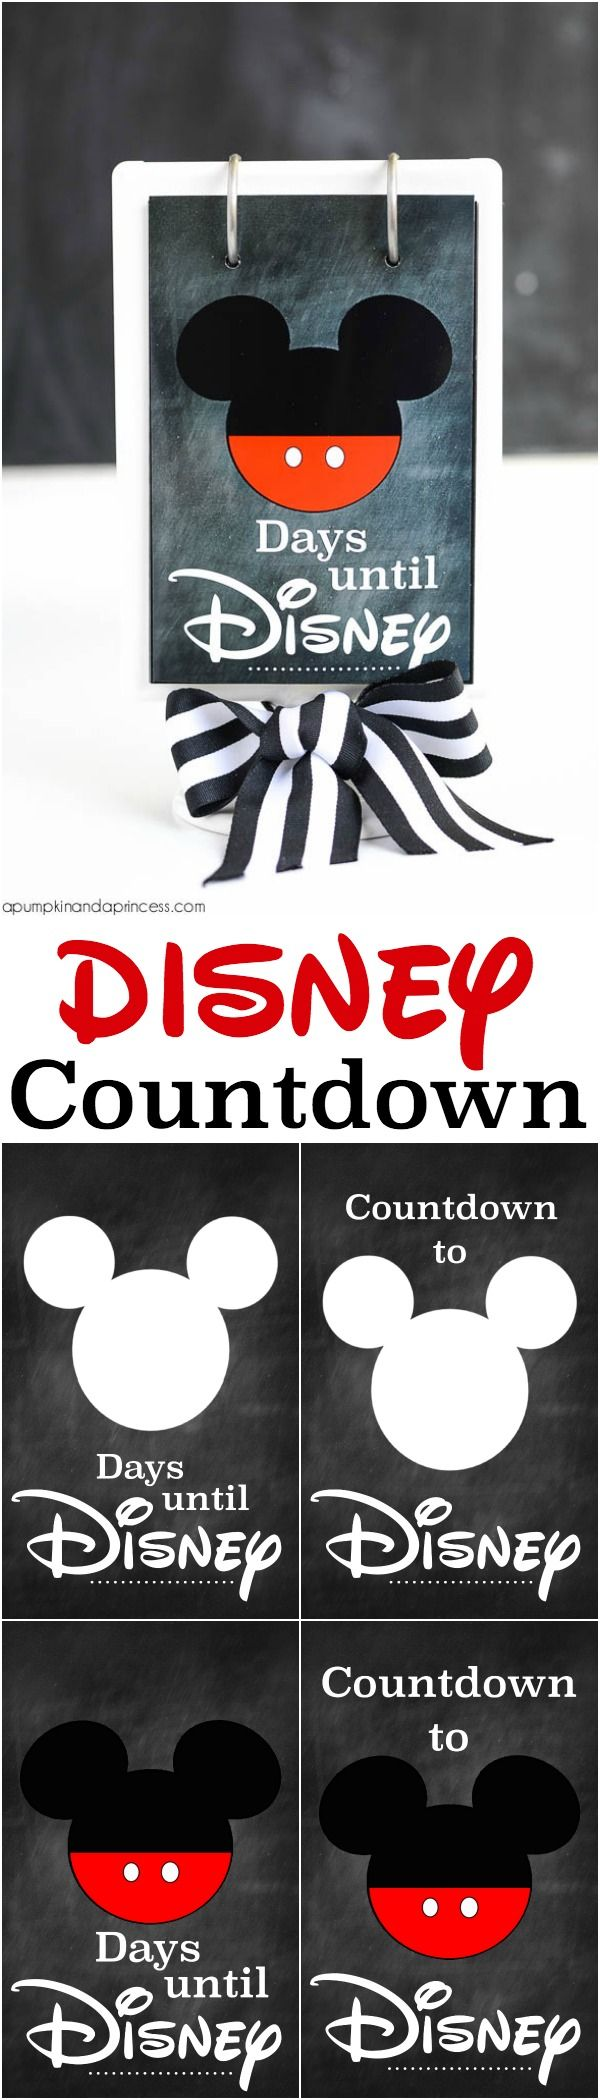 Disneyland Countdown Calendar  Designs By Nicolina Disney